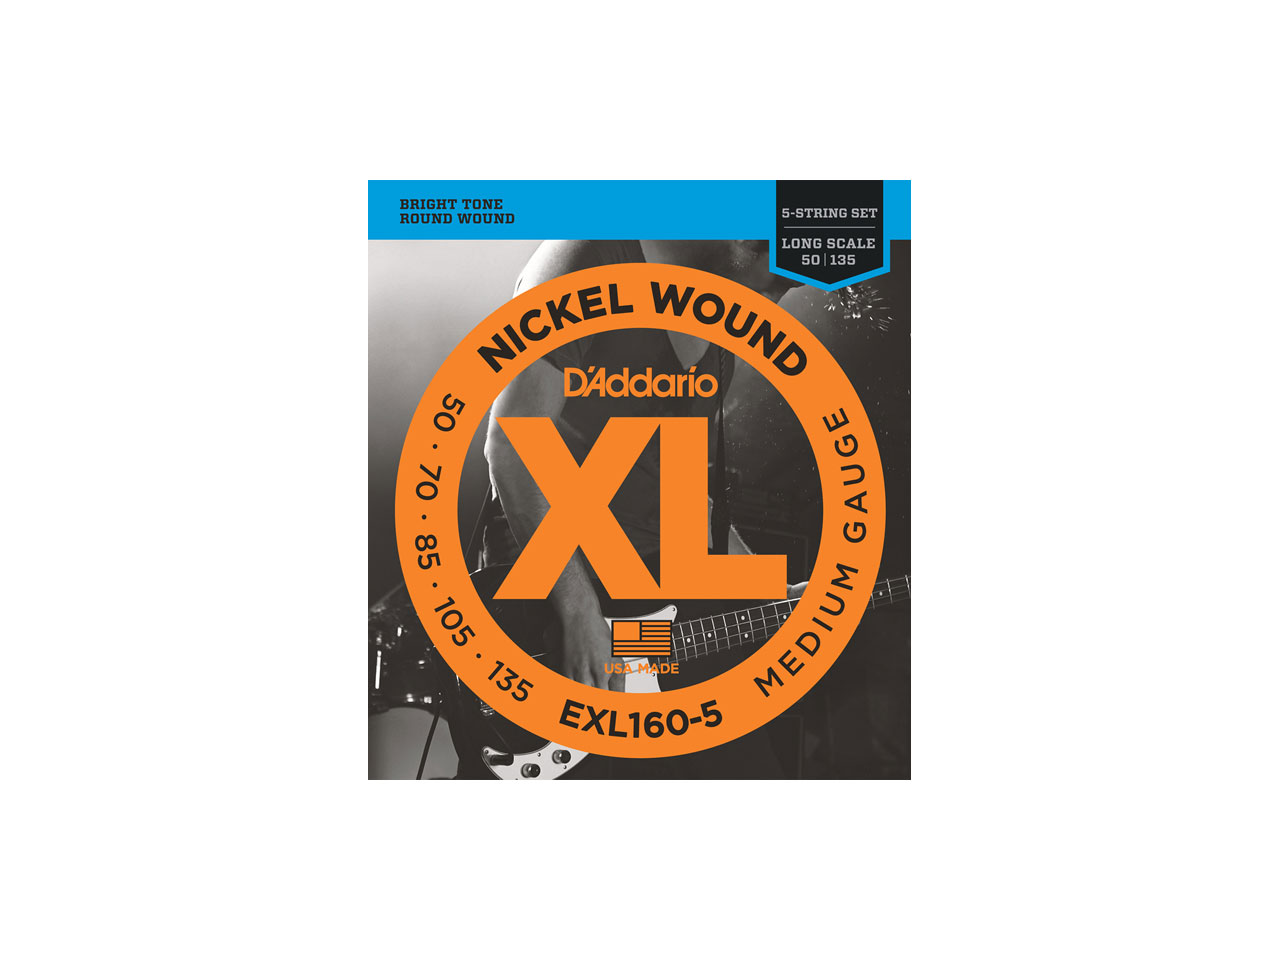 D'Addario(ダダリオ) XL Nickel Round Wound , 5-String/Long Scale , Medium / EXL160-5 (エレキベース弦/5弦用)